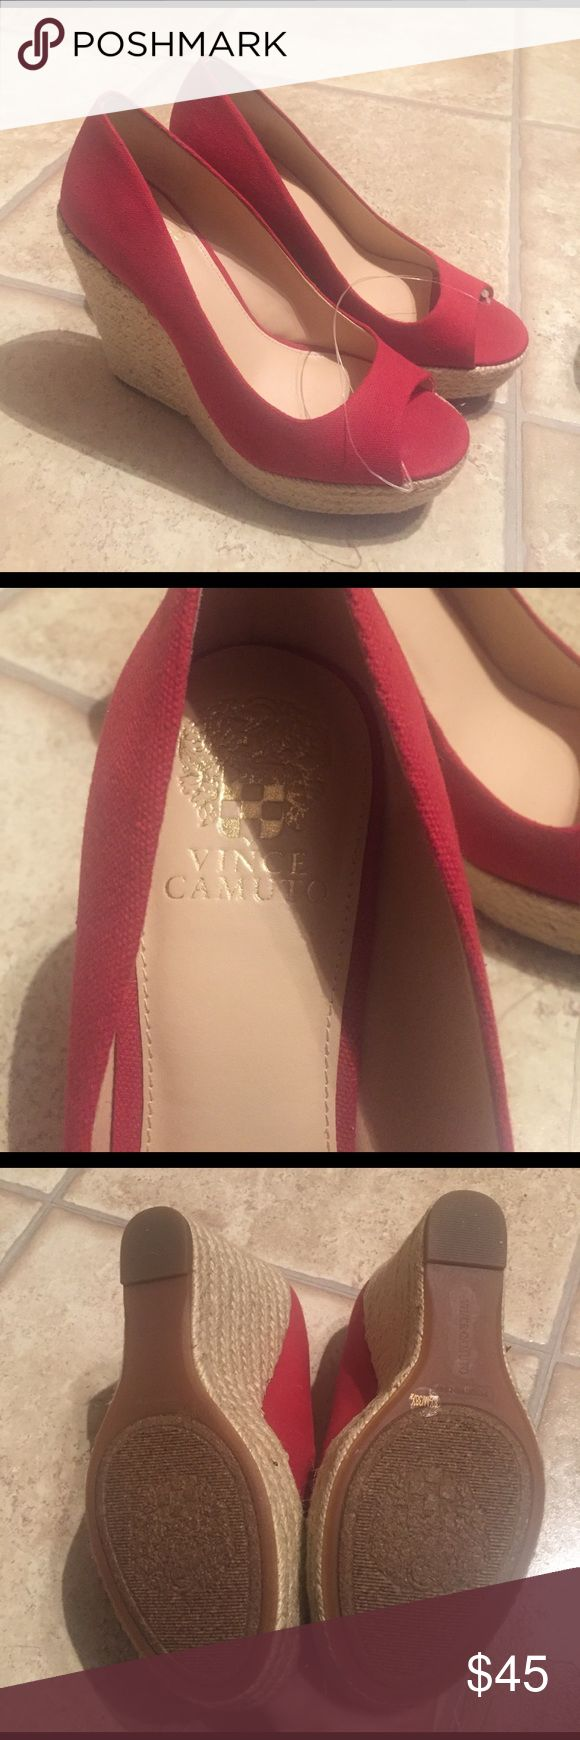 """NEW! Vince Camuto Red Platform Peep Toe Wedges NEW! Vince Camuto Peep Toe Wedges in size 8.5. Red color. Beautiful shoe for spring and summer! Brand new, never worn. Platform with 1.25"""" in front and 5"""" heel. 🔘Pet & Smoke-free home  🔘Same or next day shipping Vince Camuto Shoes Wedges"""